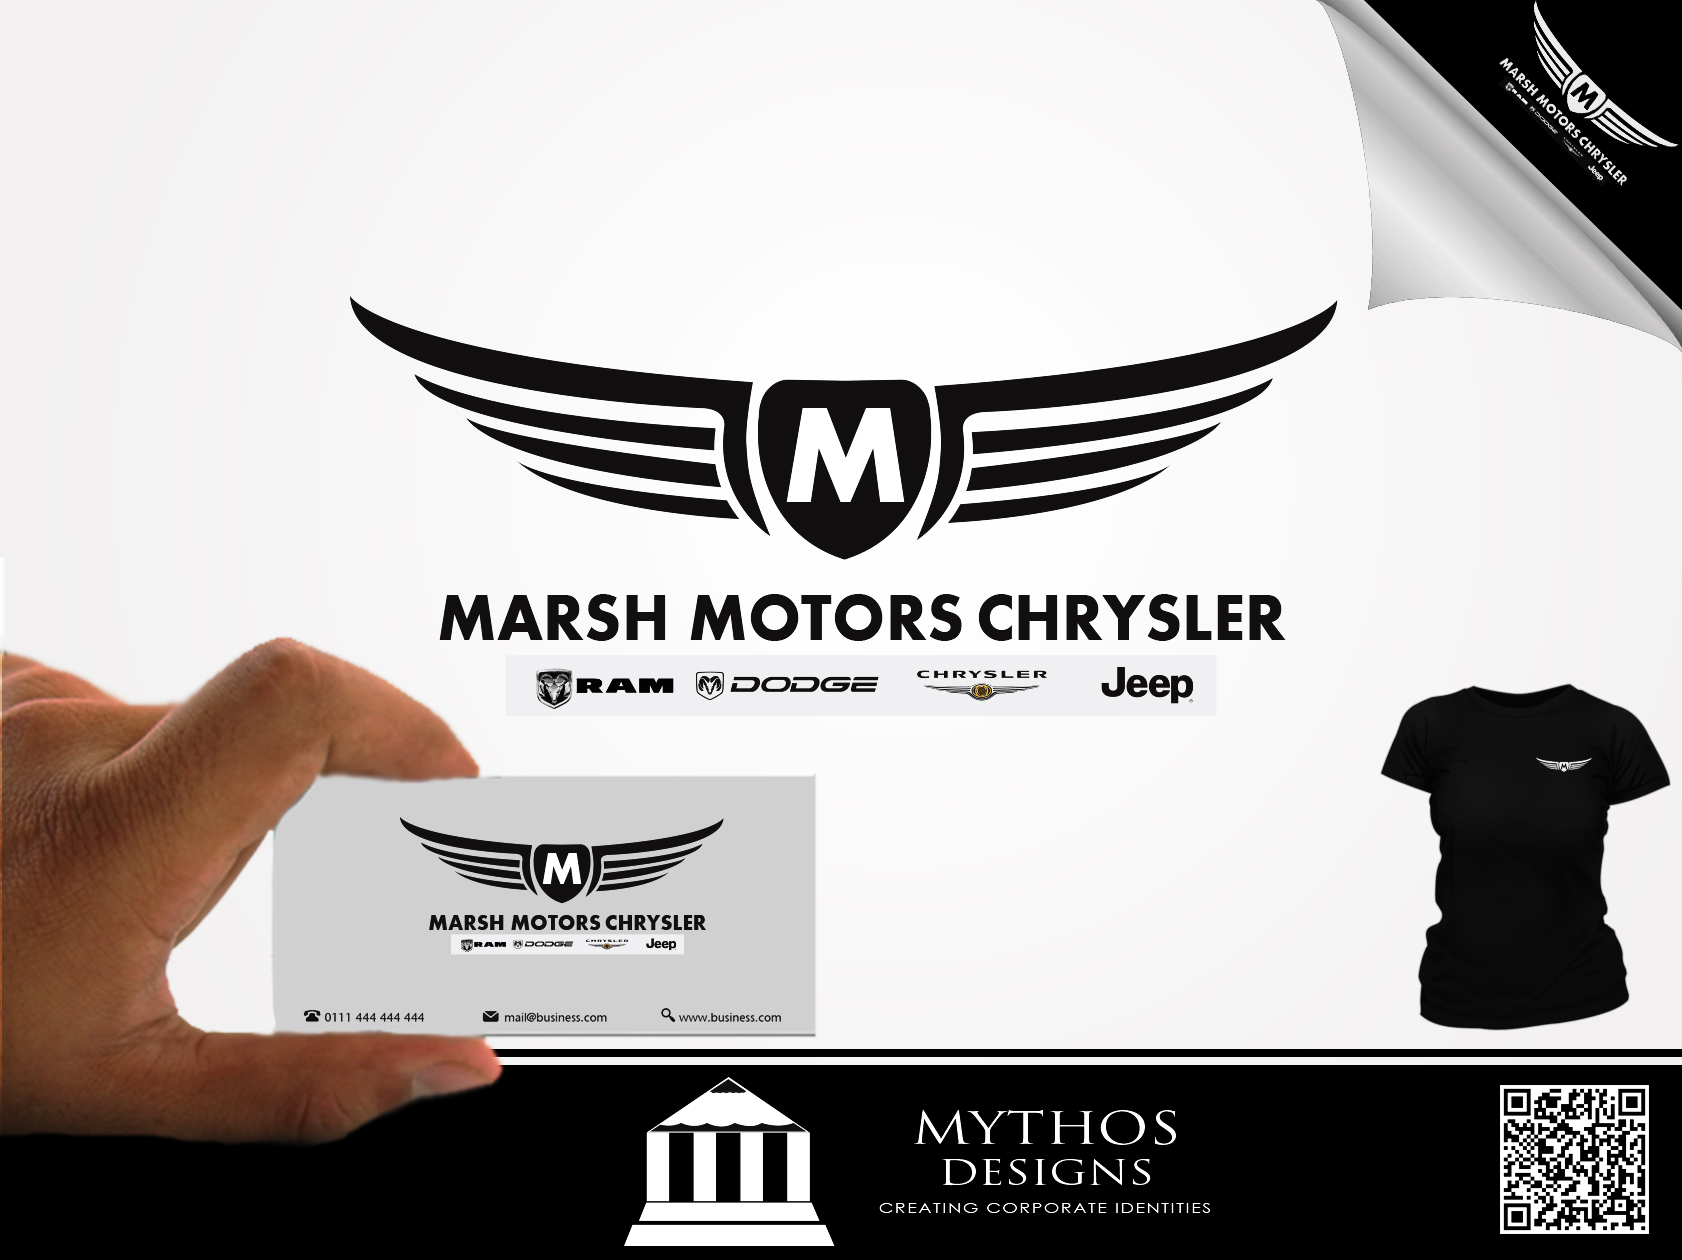 Logo Design by Mythos Designs - Entry No. 46 in the Logo Design Contest Marsh Motors Chrysler Logo Design.